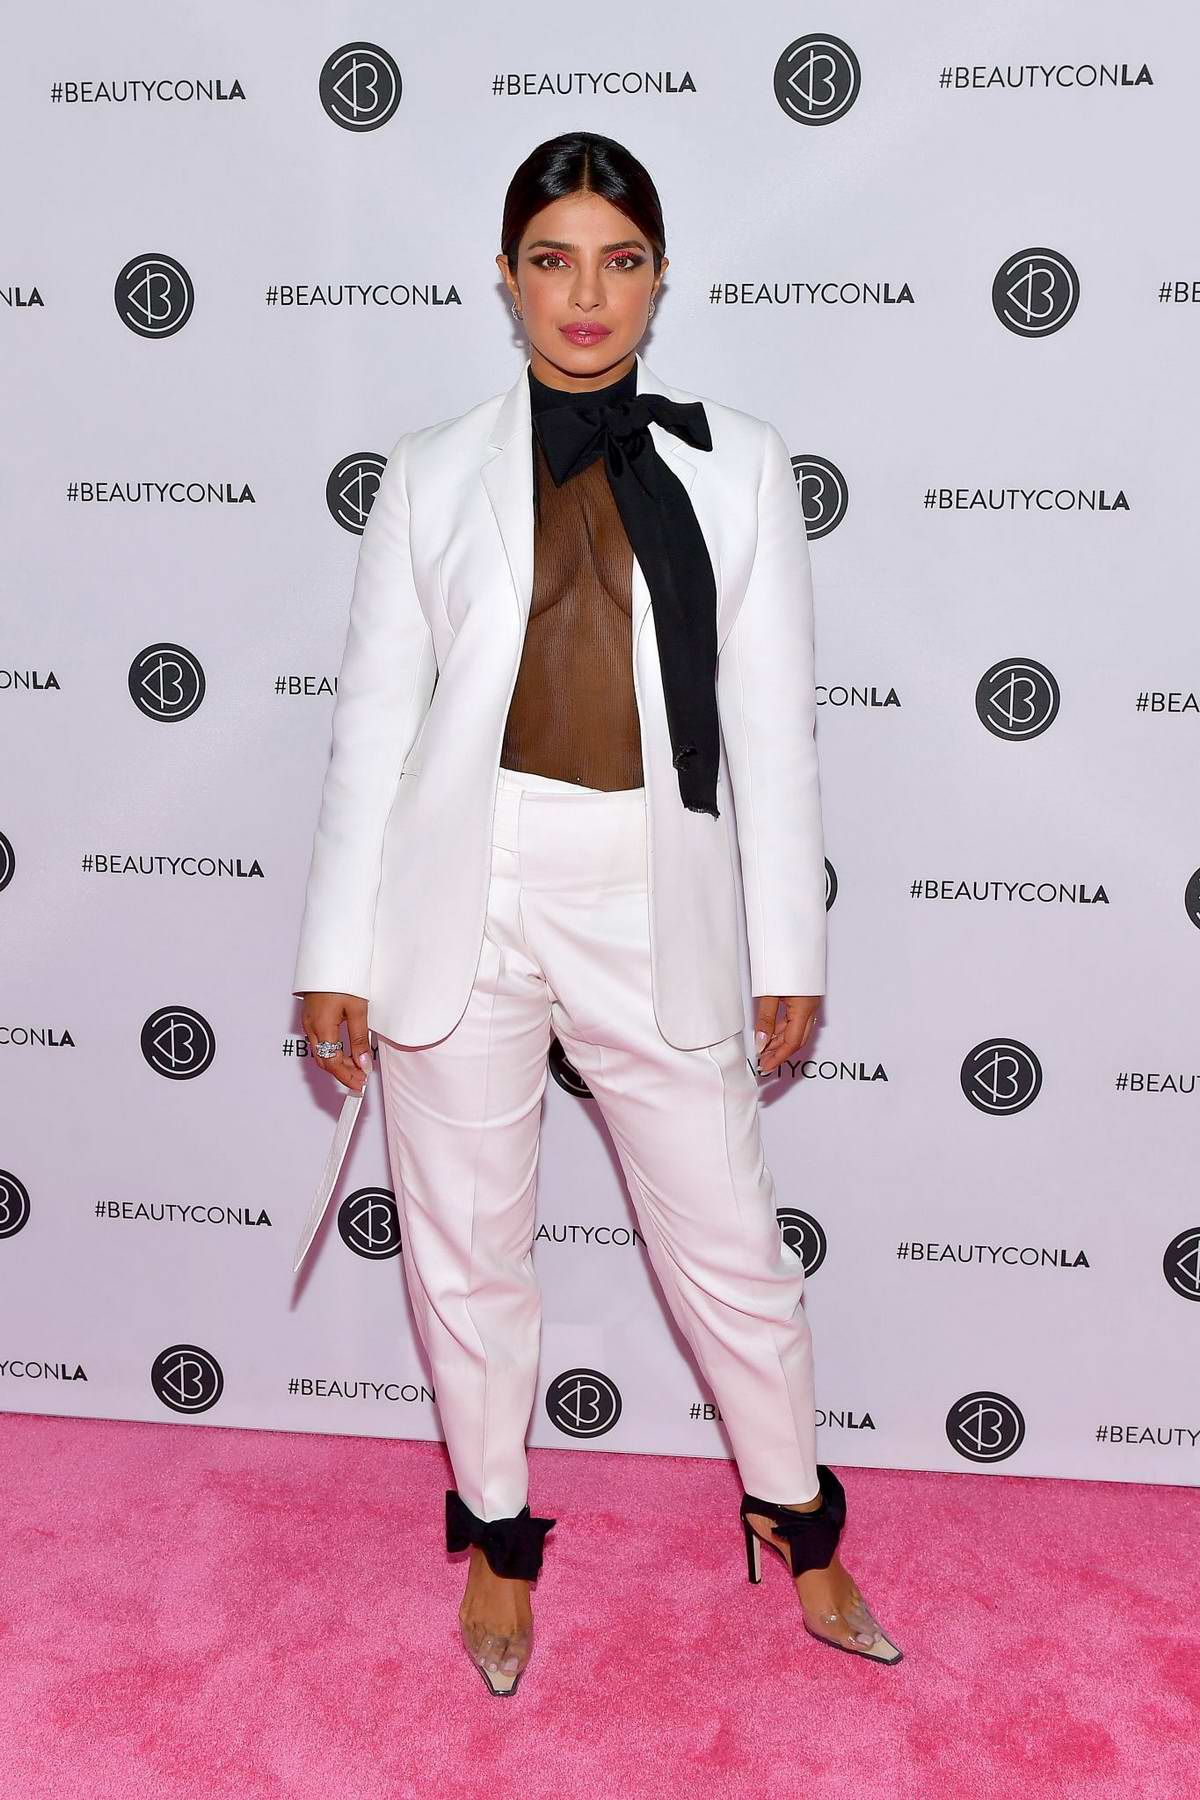 Priyanka Chopra attends BeautyCon Los Angeles 2019 Pink Carpet at LA Convention Center in Los Angeles